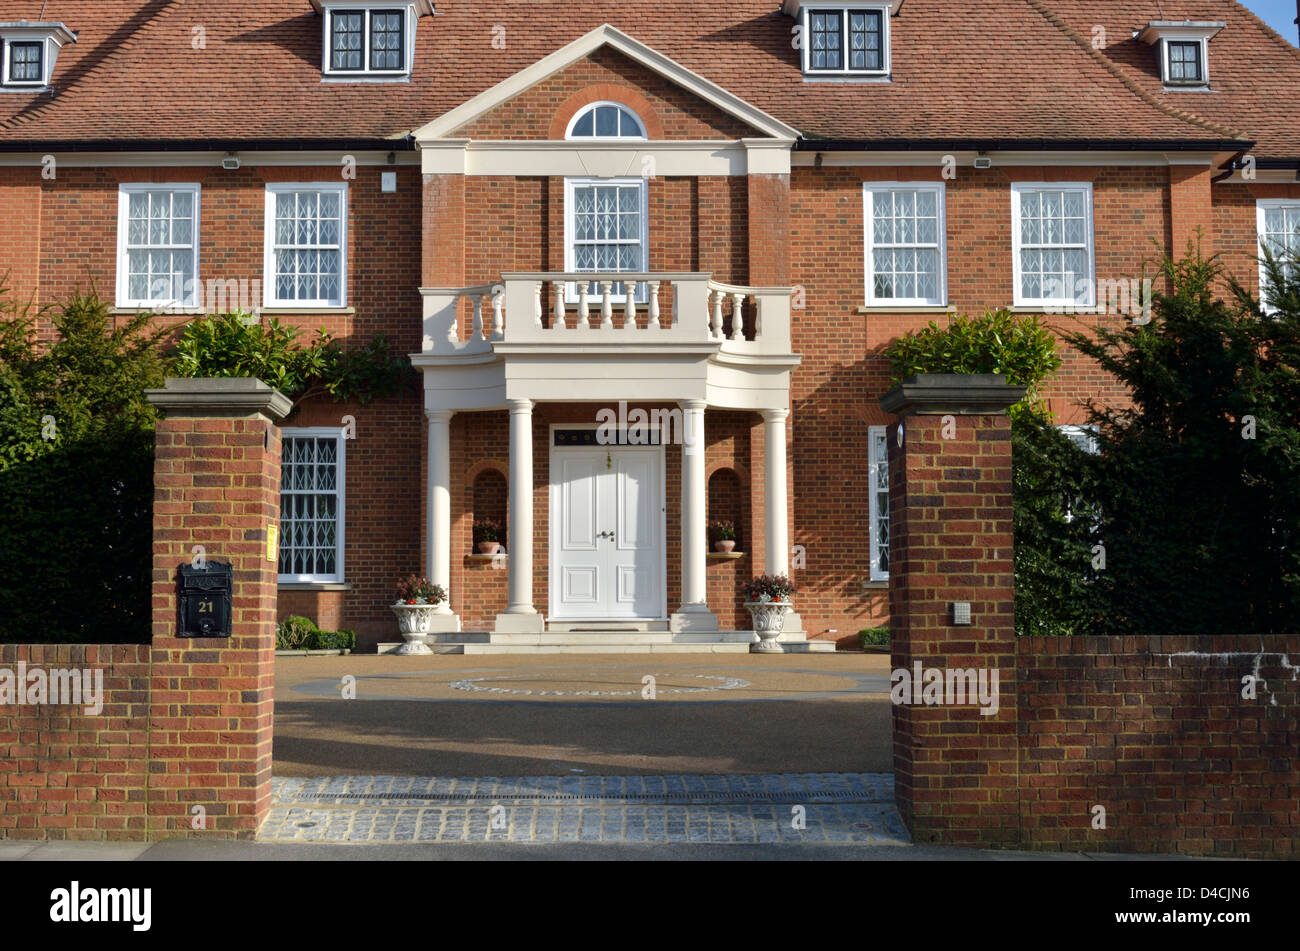 Surprising Winnington Stock Photos  Winnington Stock Images  Alamy With Fascinating Mansion In Winnington Road Hampstead Garden Suburb N London Uk  Stock With Awesome Alnwick Garden Wedding Prices Also White Garden Table And Chairs Set In Addition China Garden Benidorm And Covent Garden Pre Theatre As Well As London Gardens Additionally Garden Sheds Somerset From Alamycom With   Fascinating Winnington Stock Photos  Winnington Stock Images  Alamy With Awesome Mansion In Winnington Road Hampstead Garden Suburb N London Uk  Stock And Surprising Alnwick Garden Wedding Prices Also White Garden Table And Chairs Set In Addition China Garden Benidorm From Alamycom